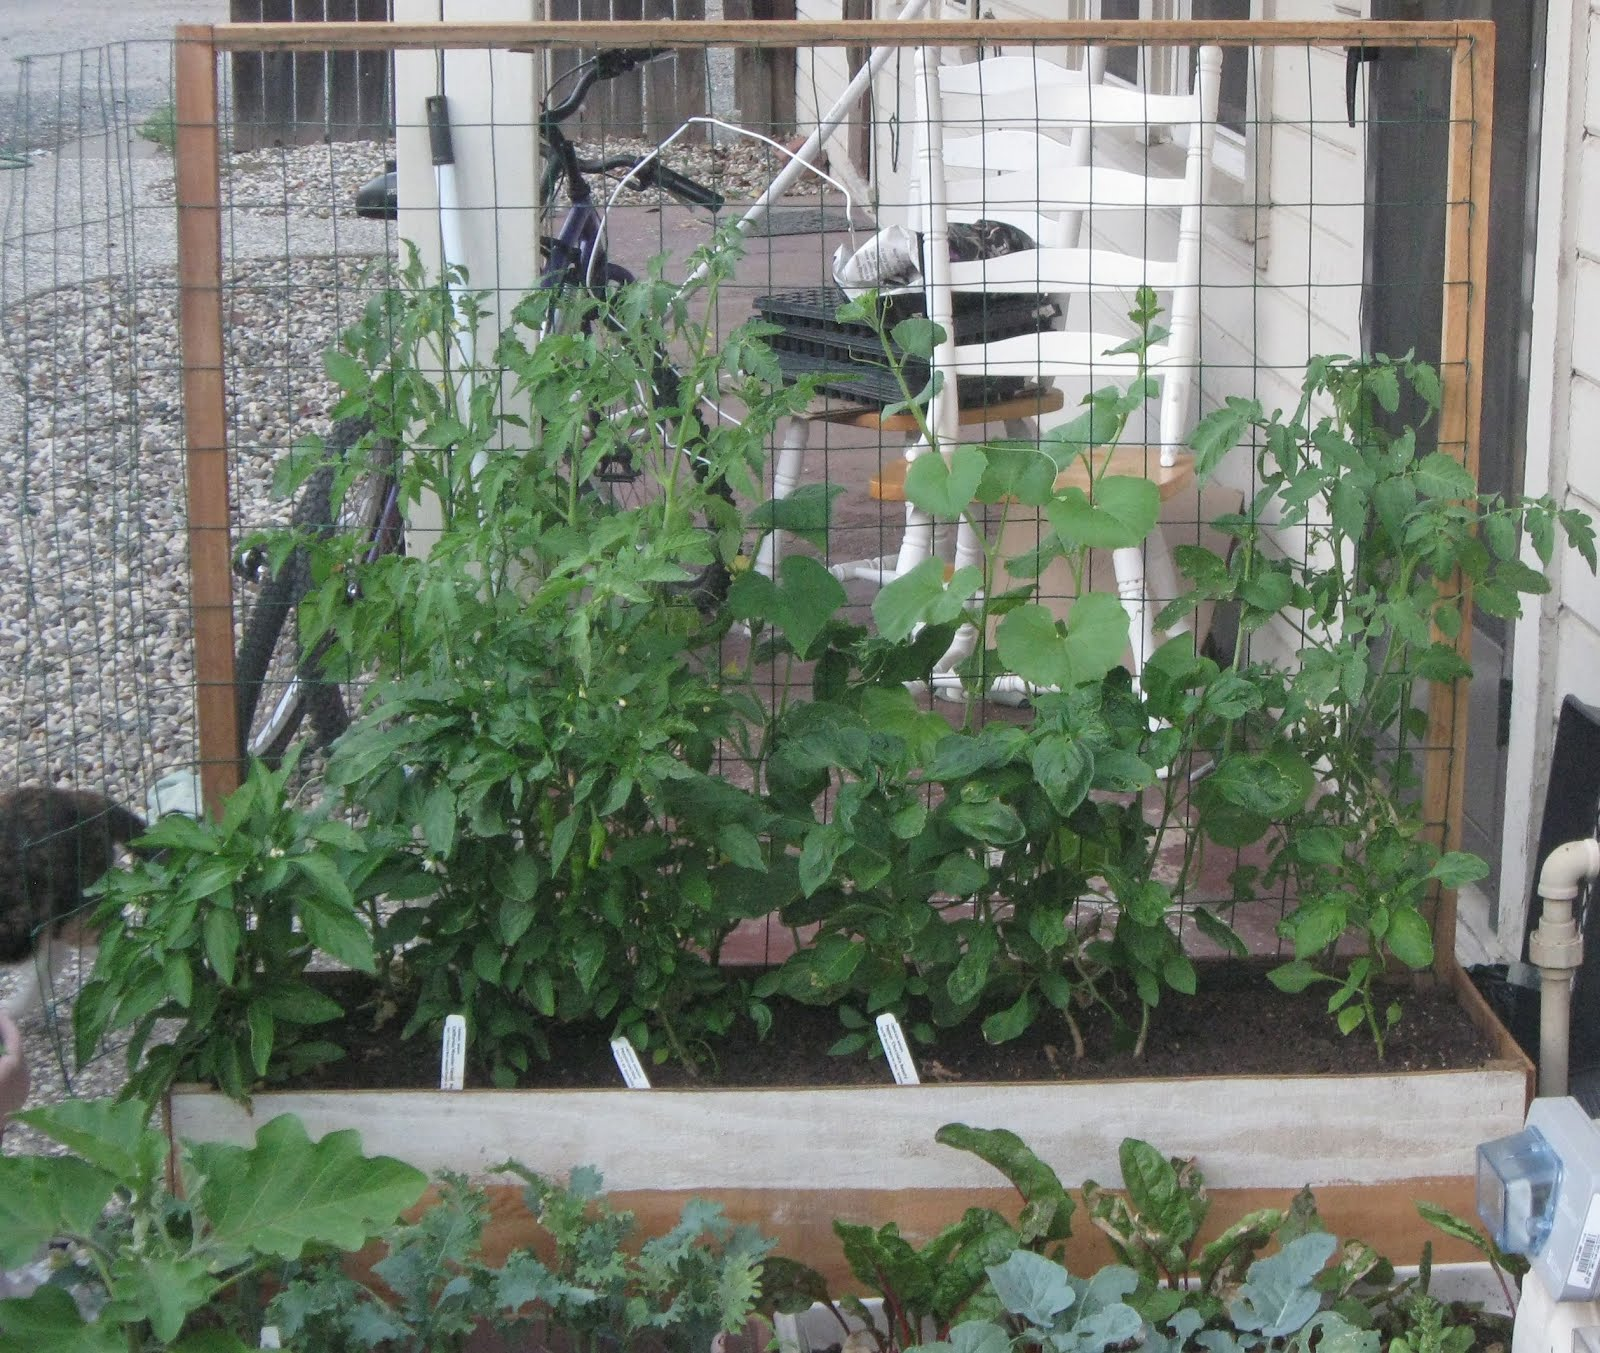 Growing Vegetables In Urban Planters: My First Garden: Vertical Gardening: A Solution For Urban